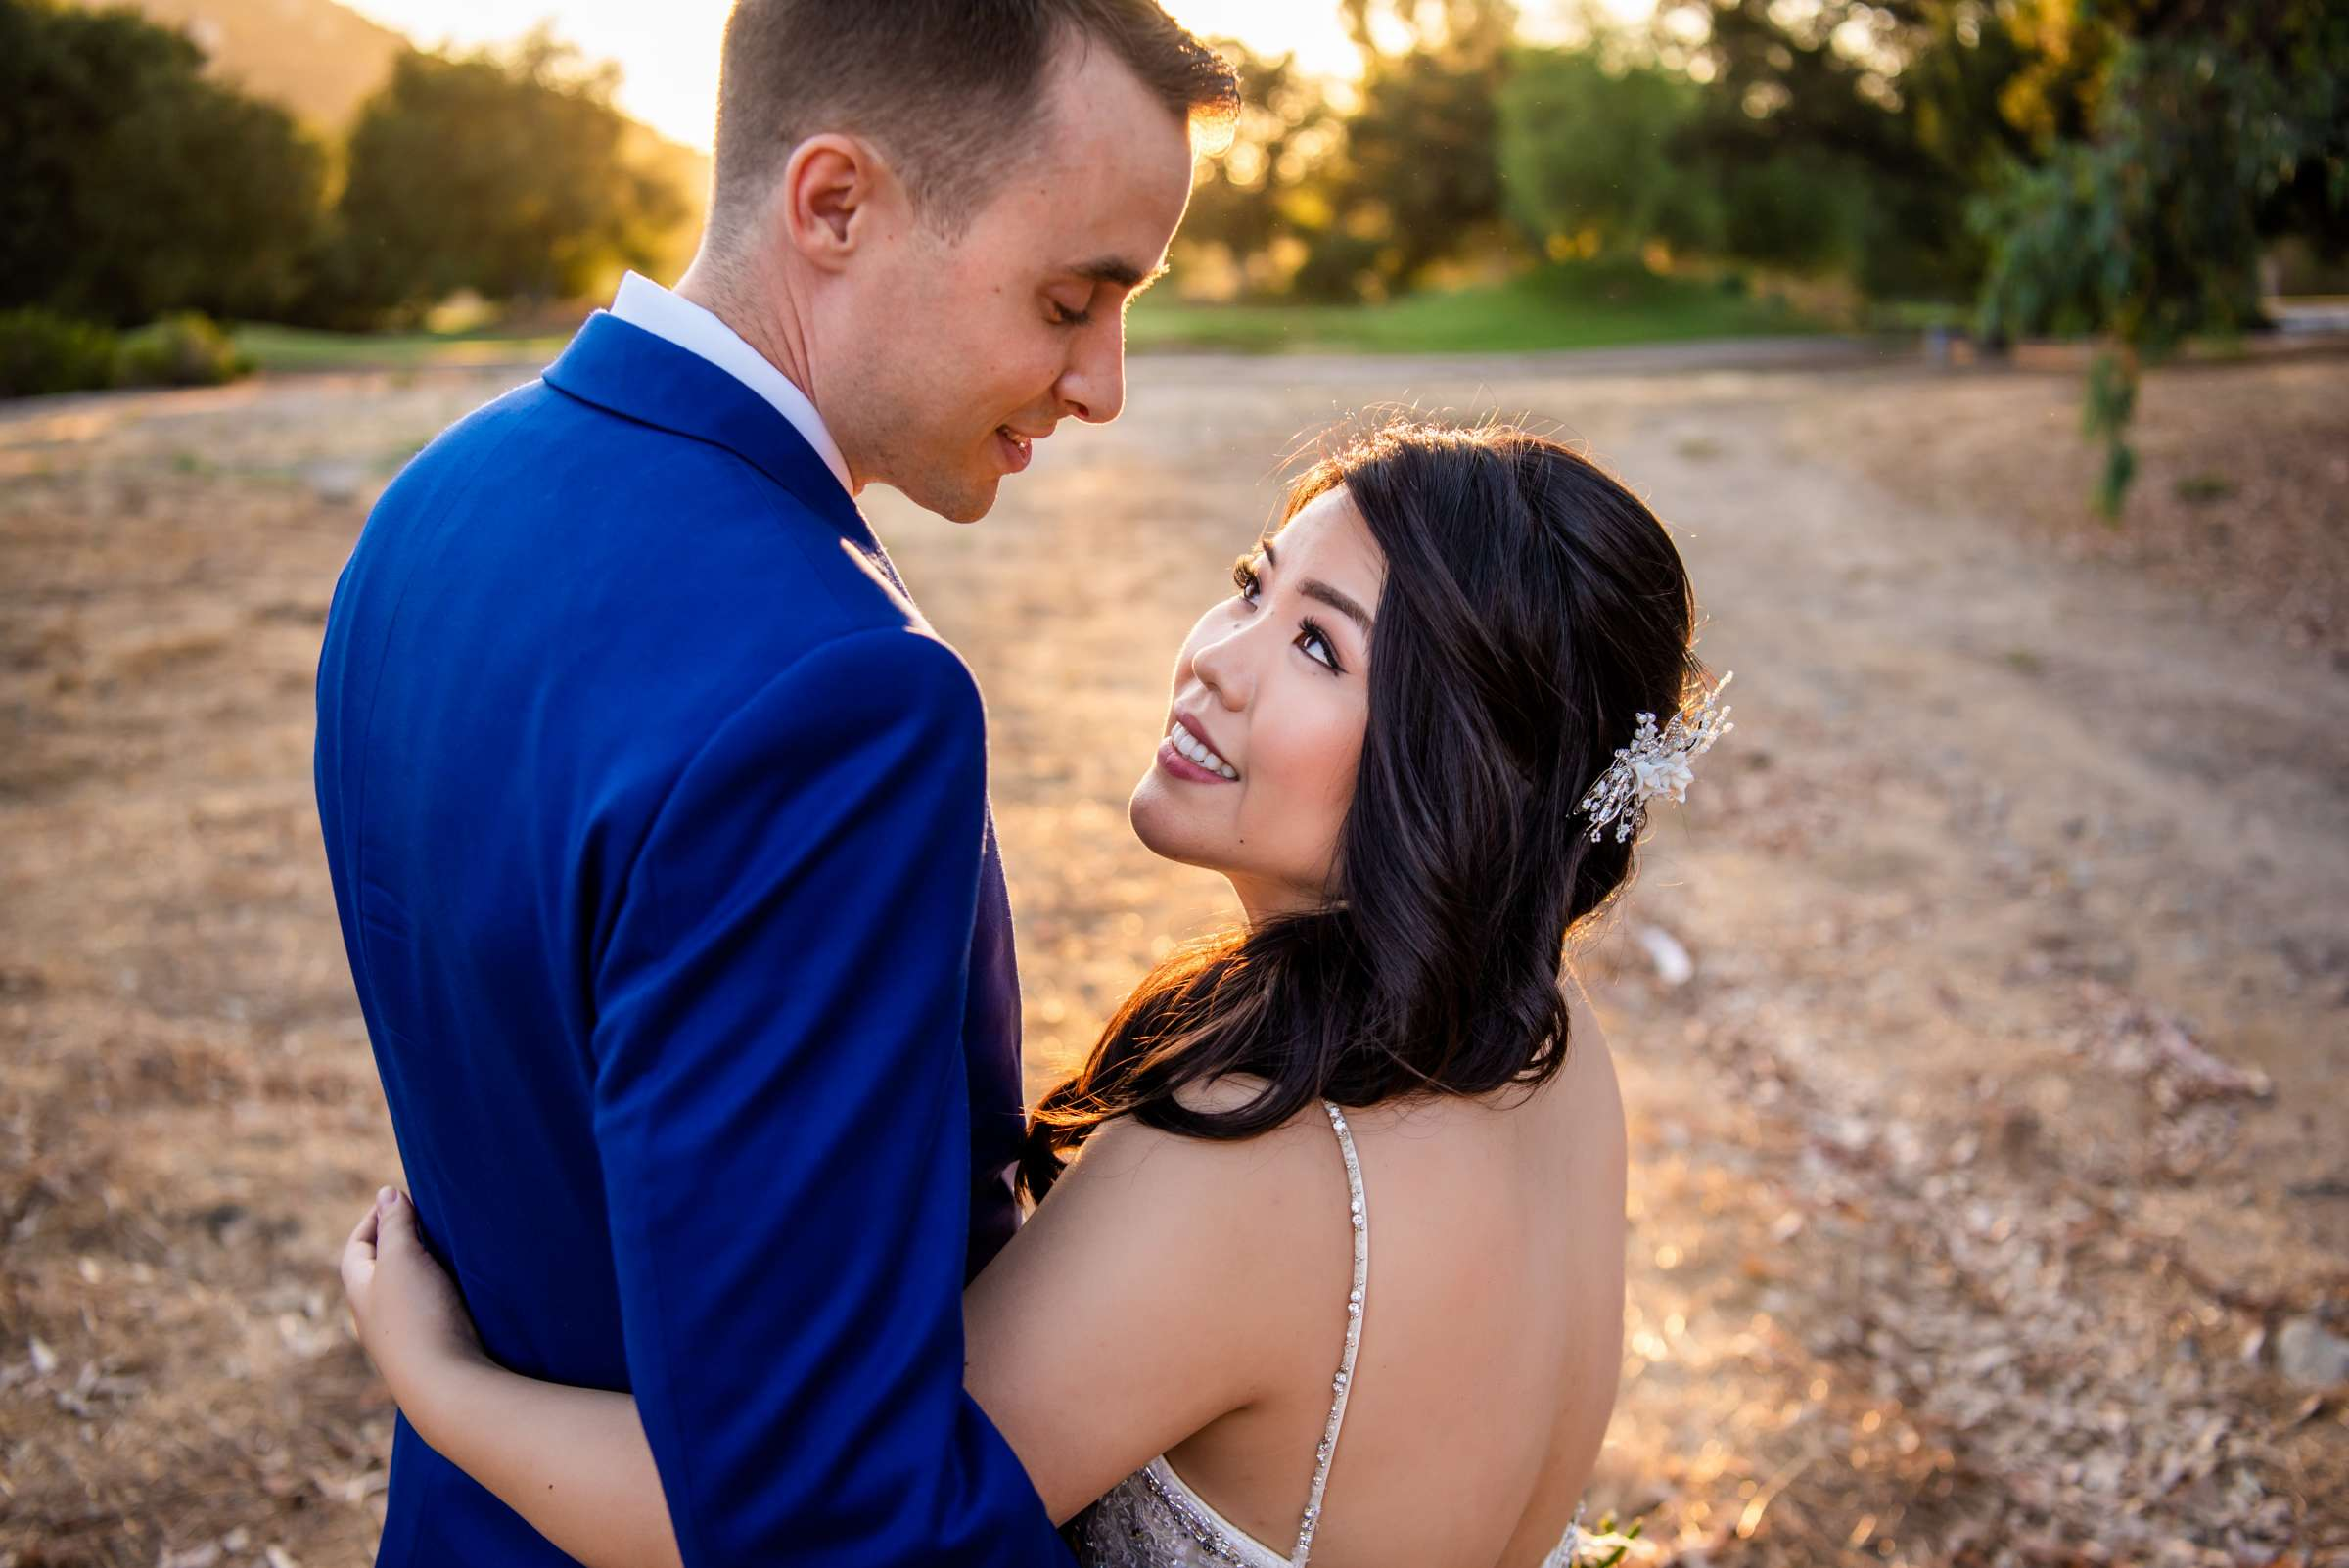 Mt Woodson Castle Wedding coordinated by I Do Weddings, Aya and Jared Wedding Photo #486860 by True Photography